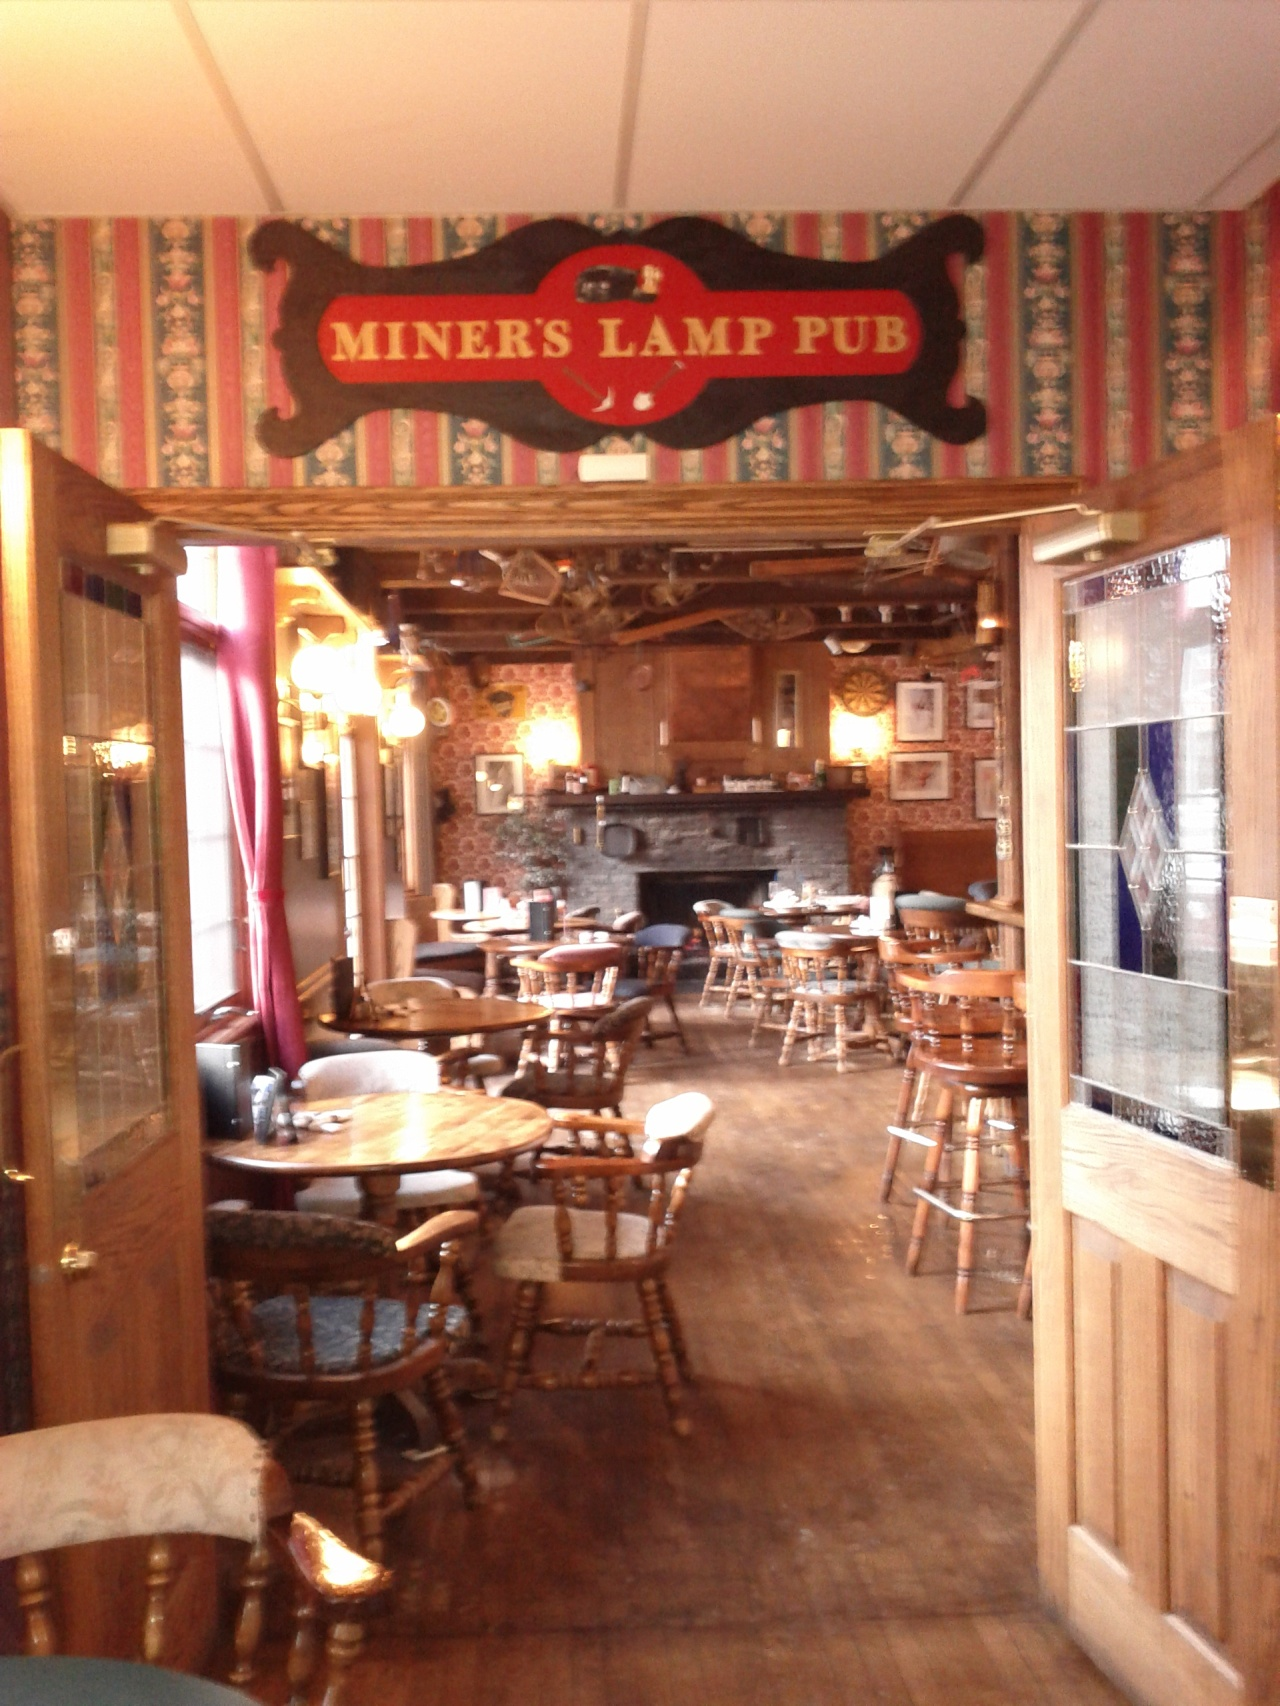 Miner's Lamp Pub in Canmore